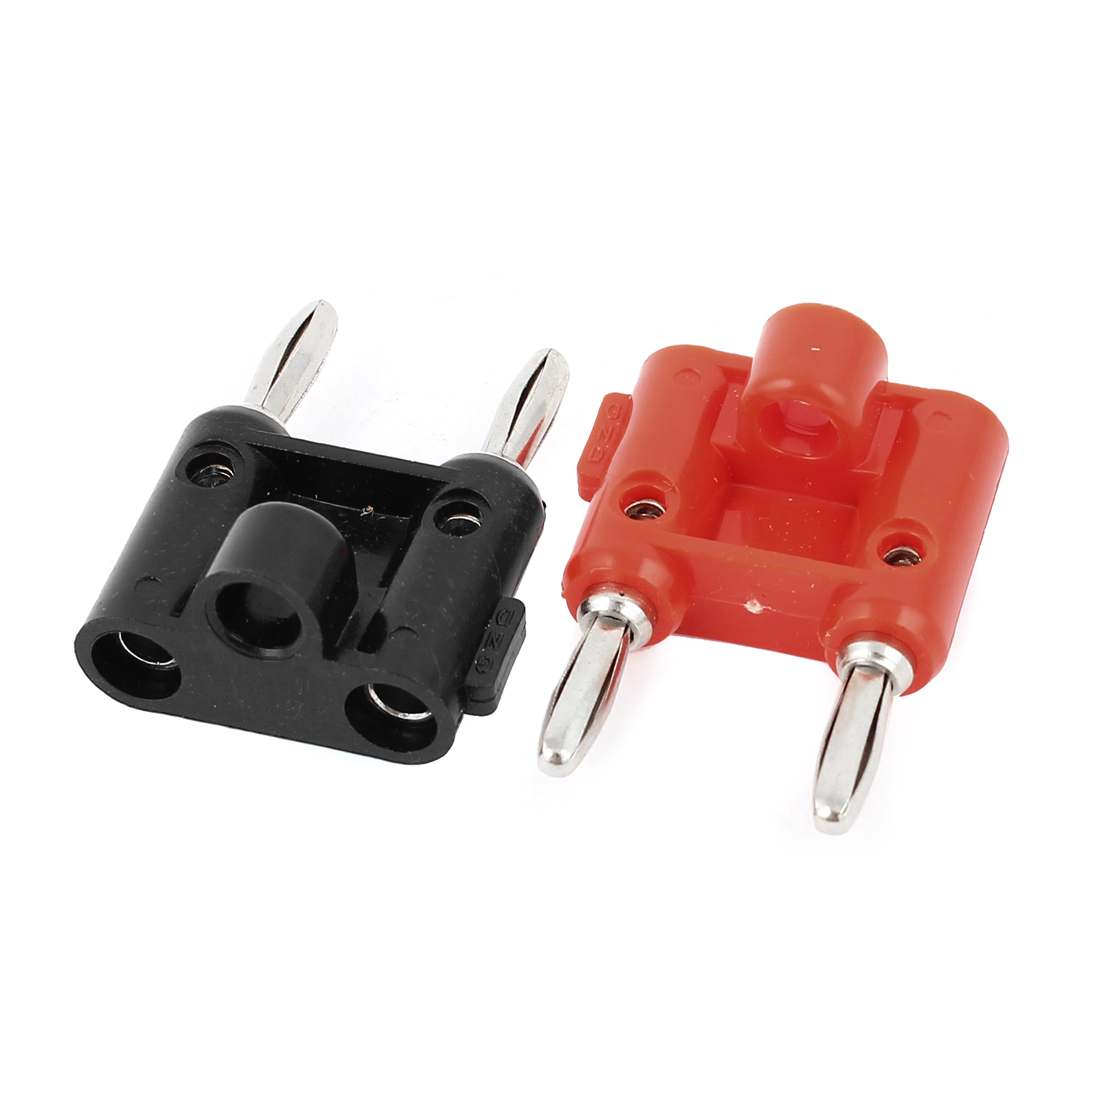 2pcs Speaker Audio Screw Type Dual Banana Binding Post Red Black